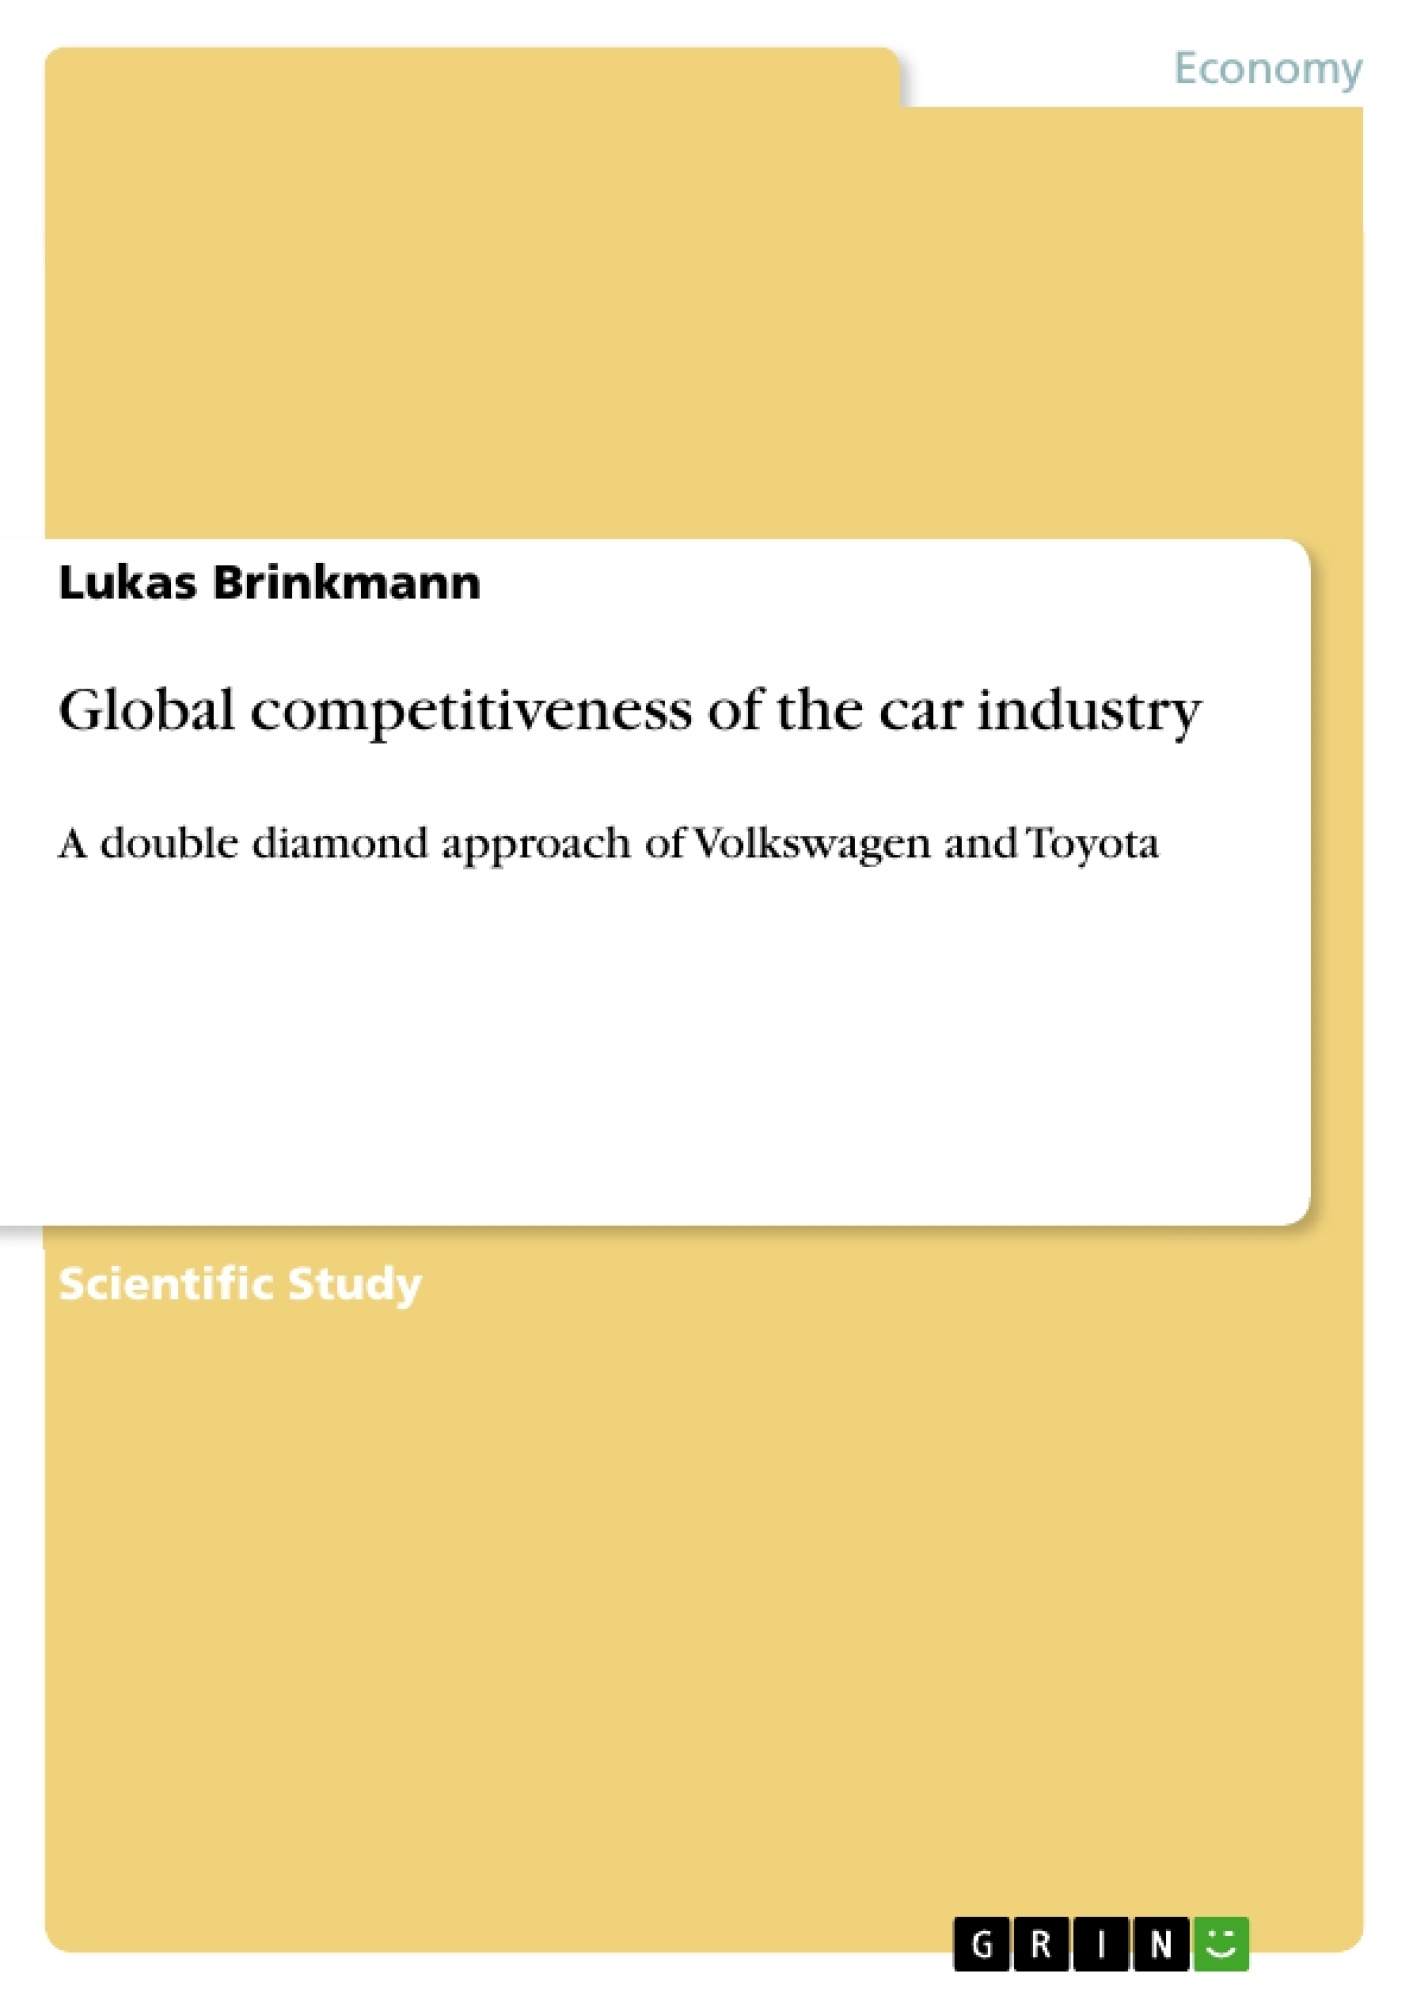 Title: Global competitiveness of the car industry